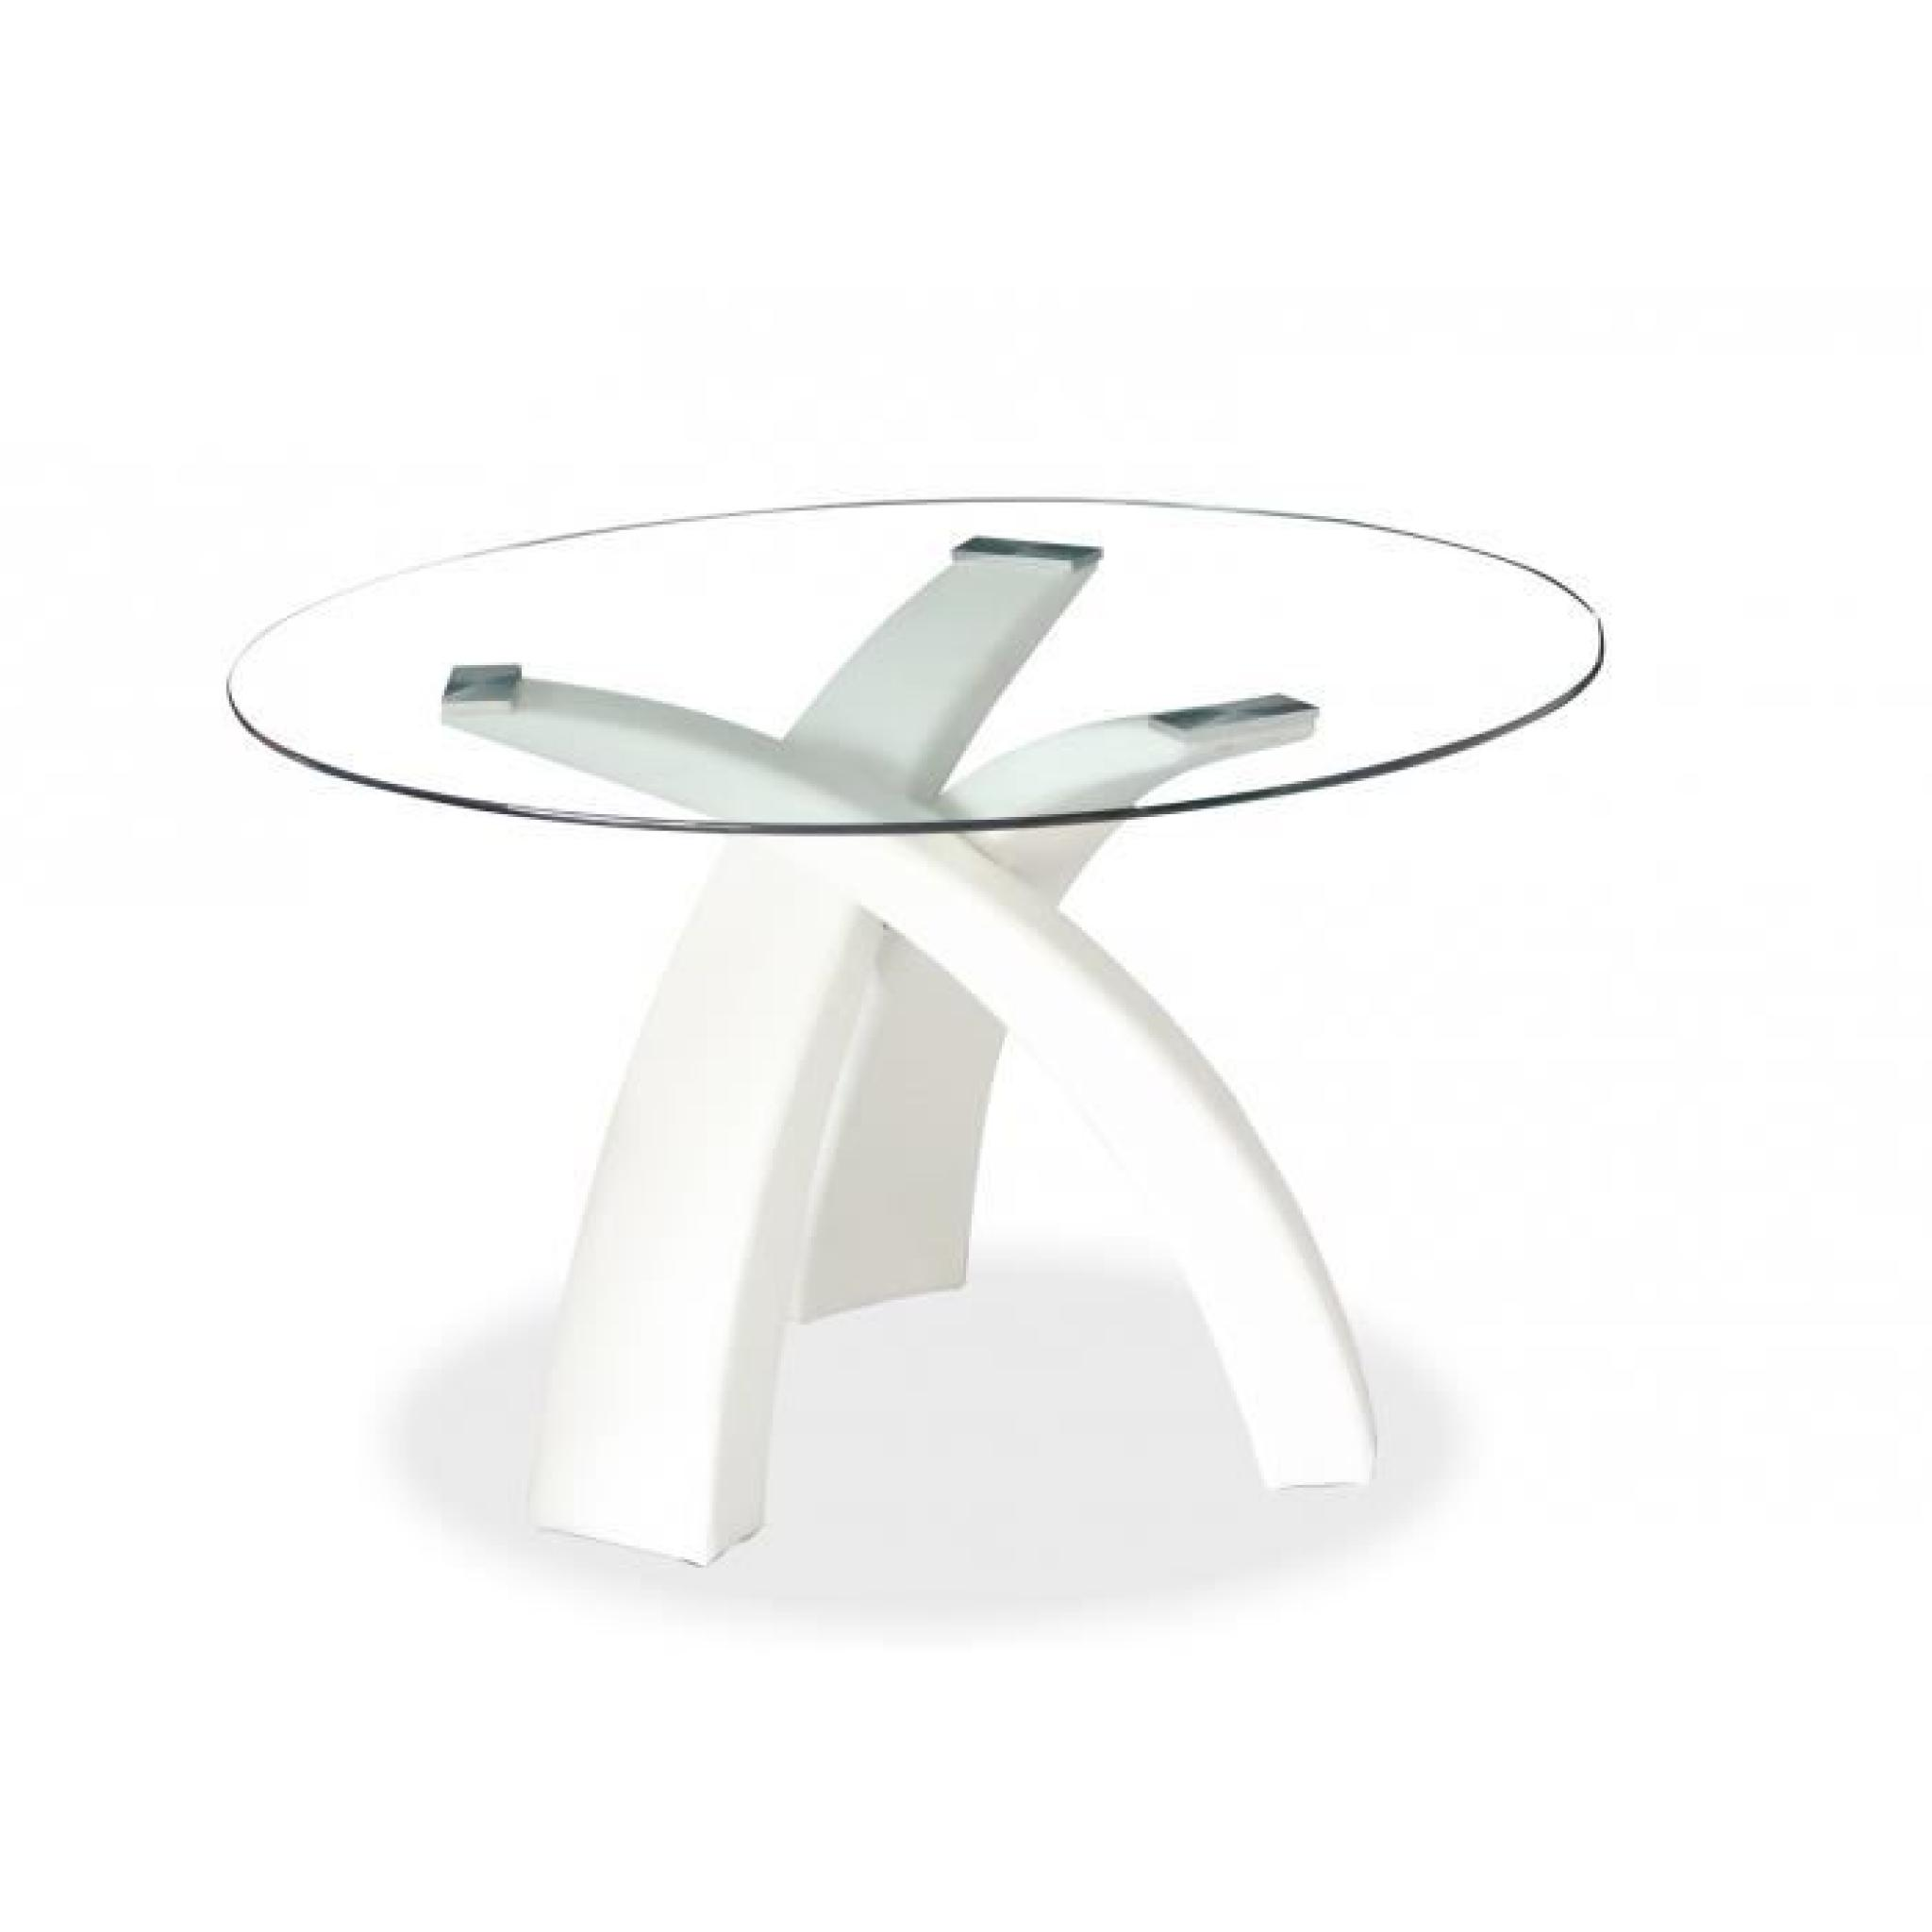 Table manger ronde blanche gore achat vente table for Table salle a manger ronde blanche